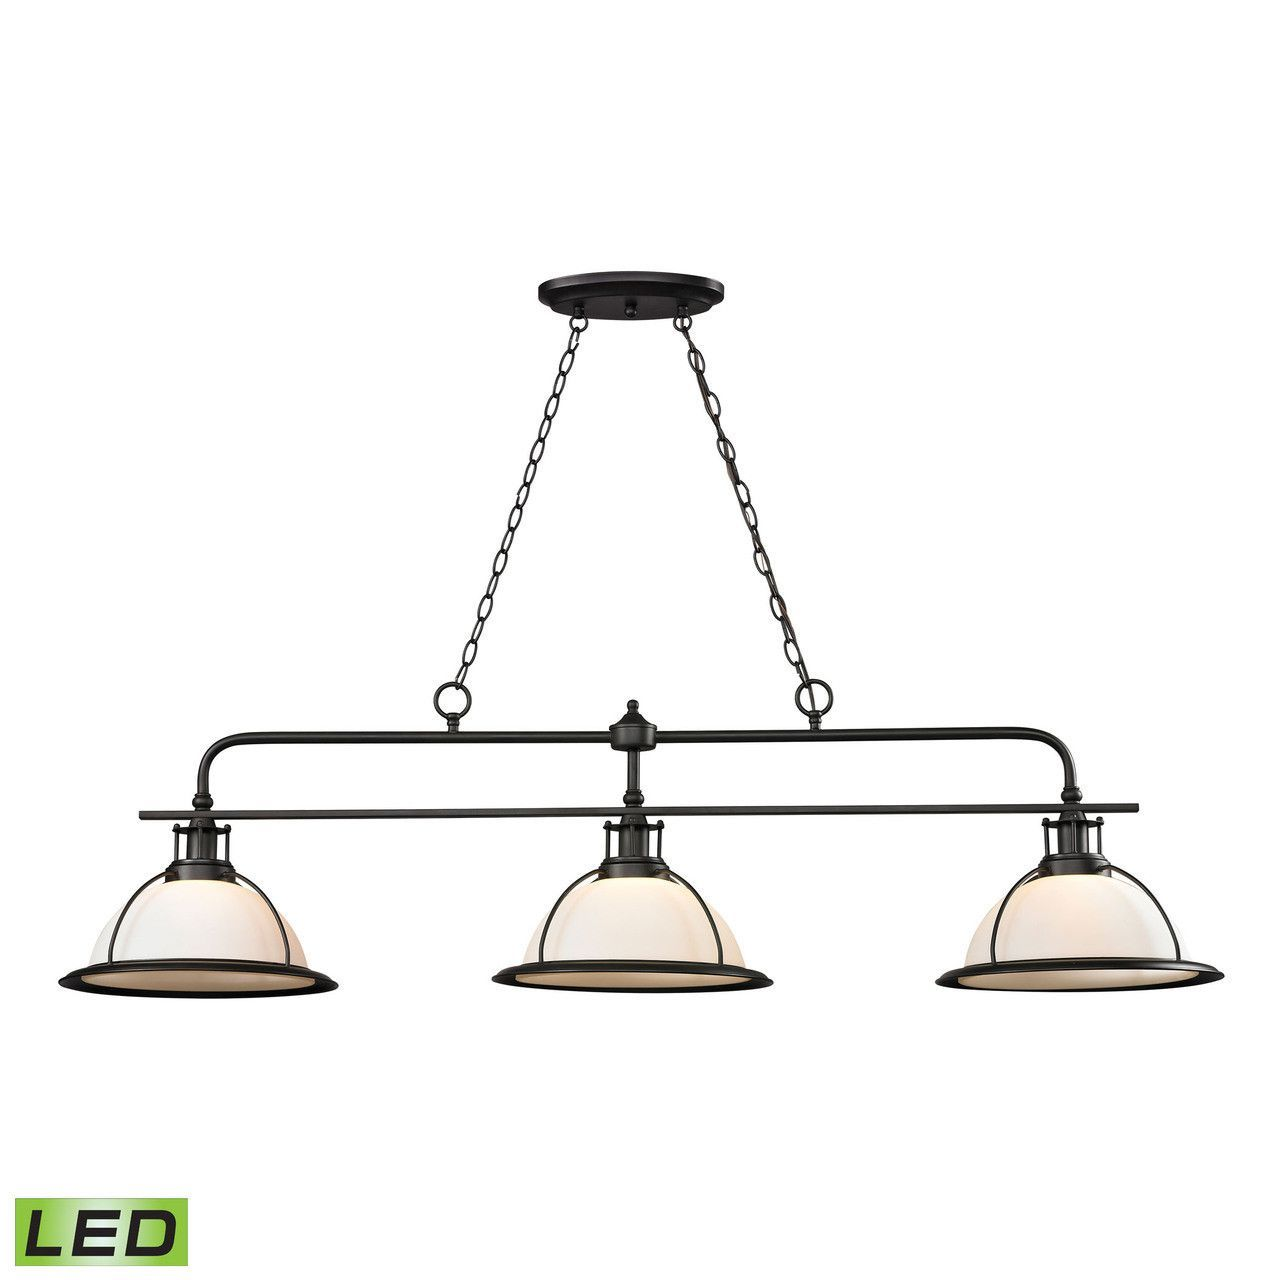 Wilmington 3 light led billiard in oil rubbed bronze 550473 led elk wilmington collection 3 light islandbilliard light in oil rubbed bronze led arubaitofo Choice Image